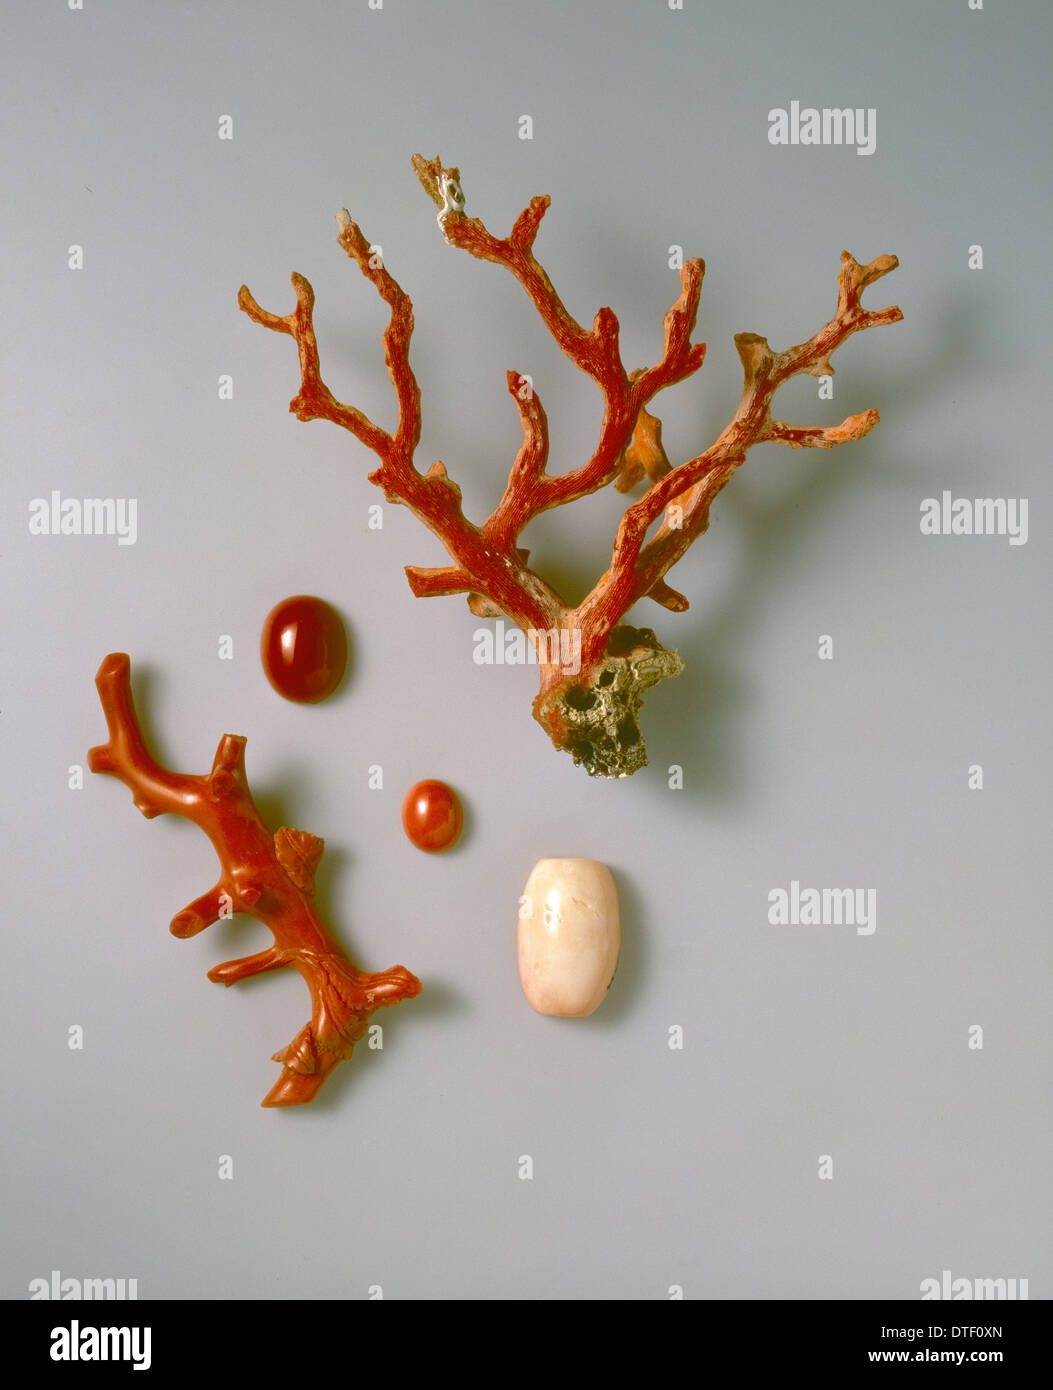 Rough and polished coral specimens Stock Photo